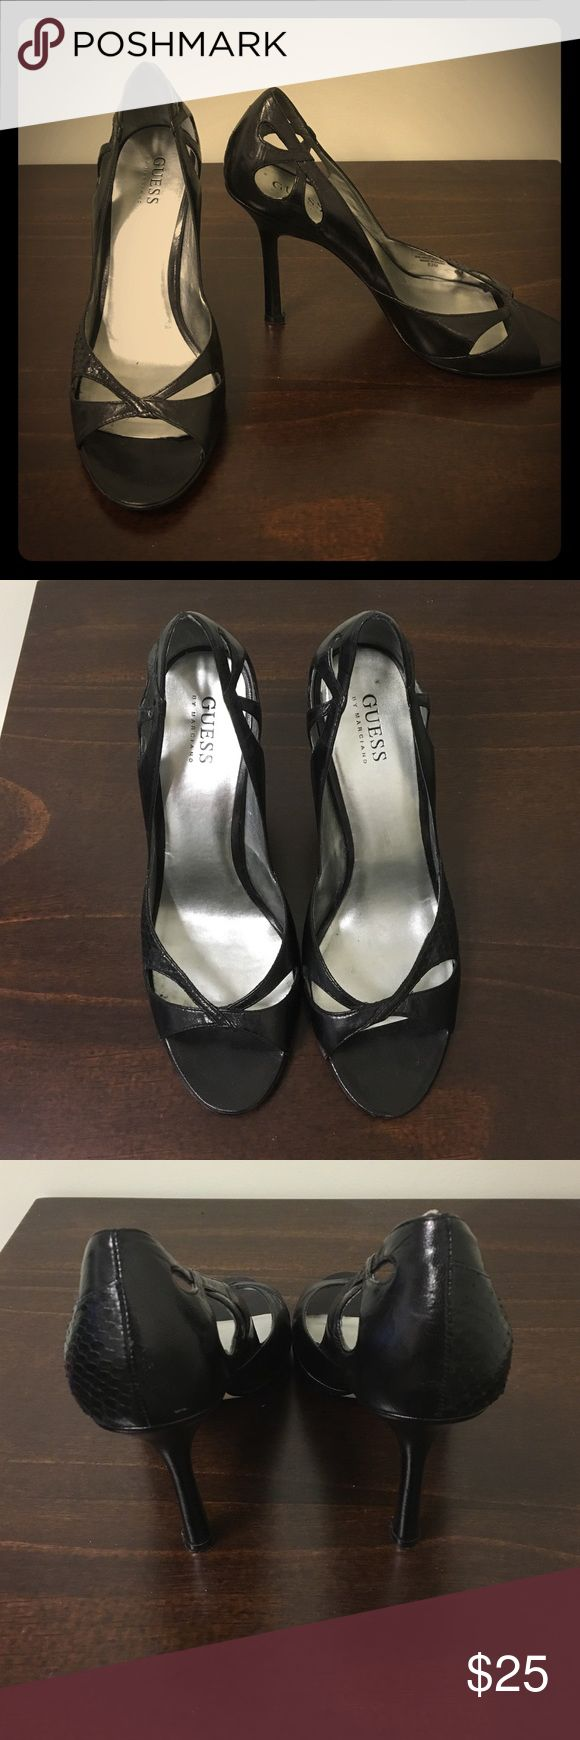 "GUESS by Marciano black dressy sandal heels Used but in good condition. Approx 4"" heel. Guess by Marciano Shoes Heels"